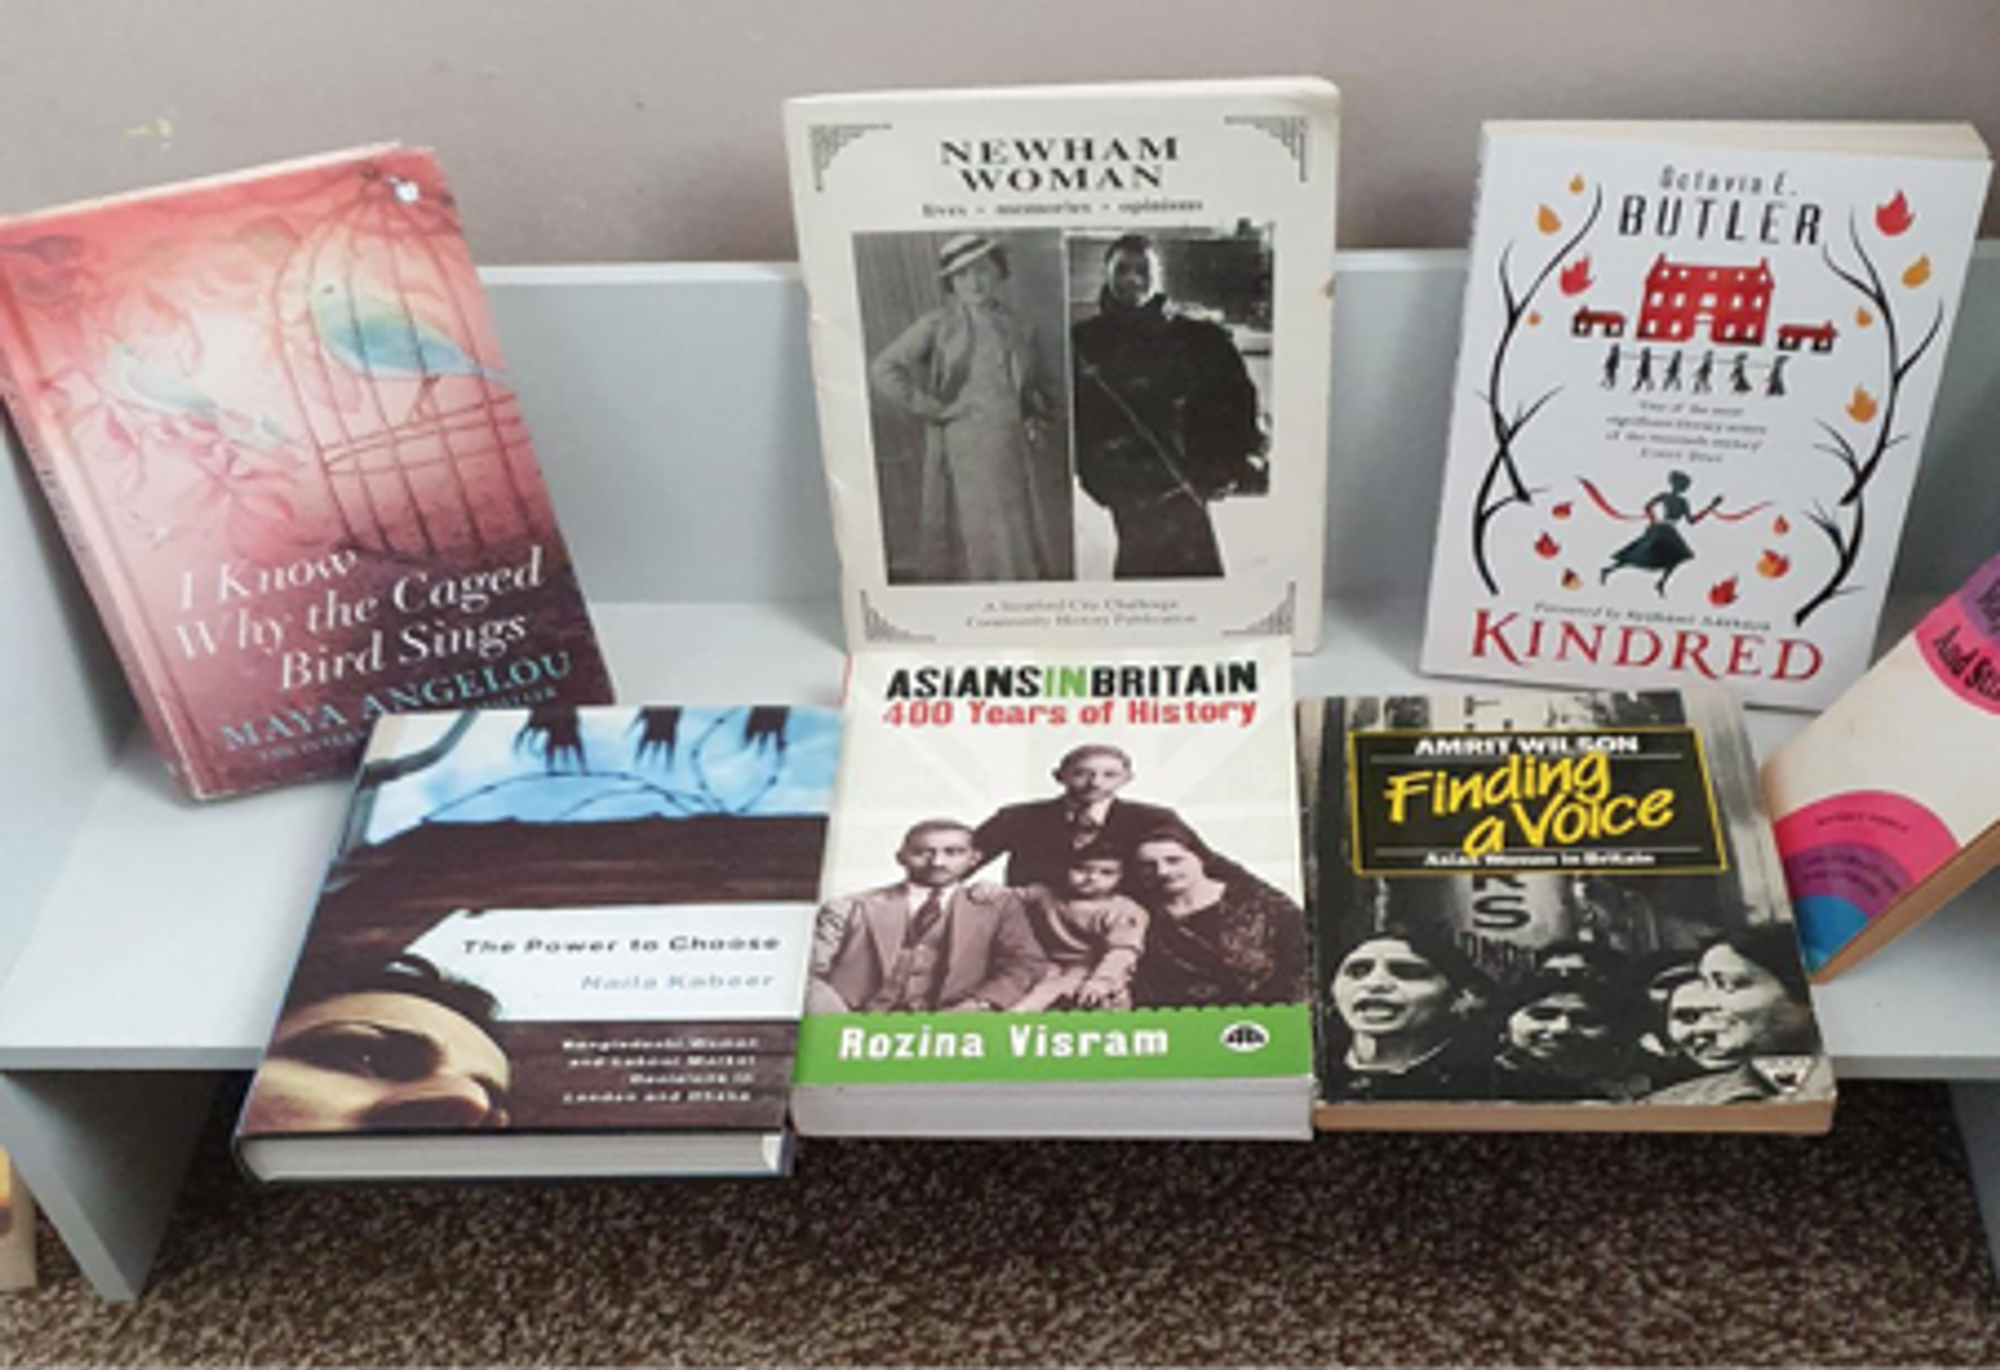 Selection of books by women authors on a freestanding shelf